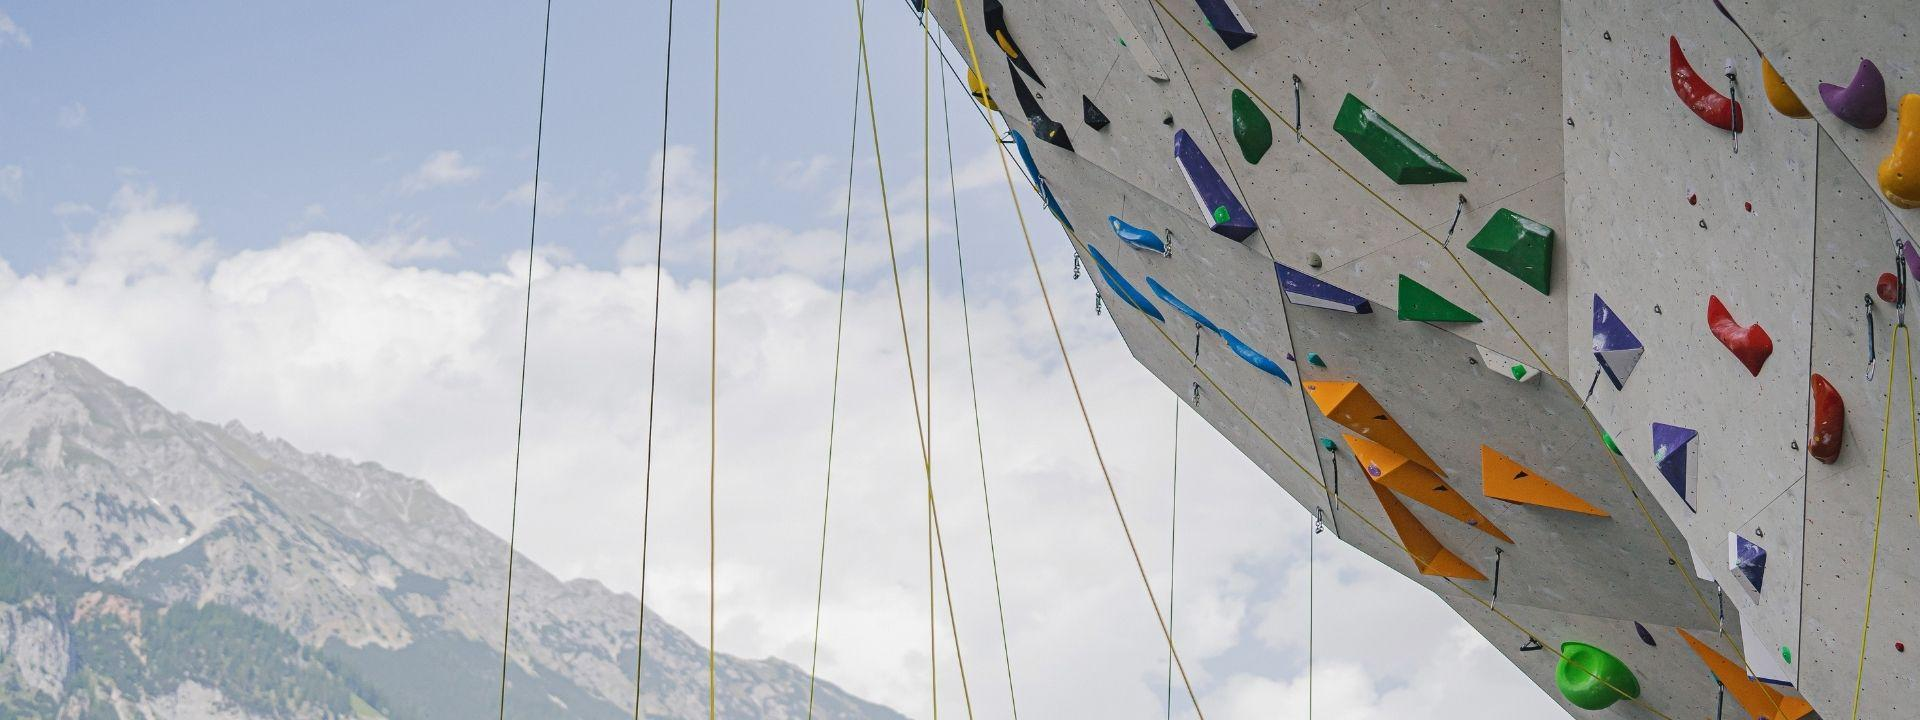 INNSBRUCK WELCOMES BOULDER, LEAD, SPEED, AND PARACLIMBING FOR THE FIRST TIME SINCE 2018